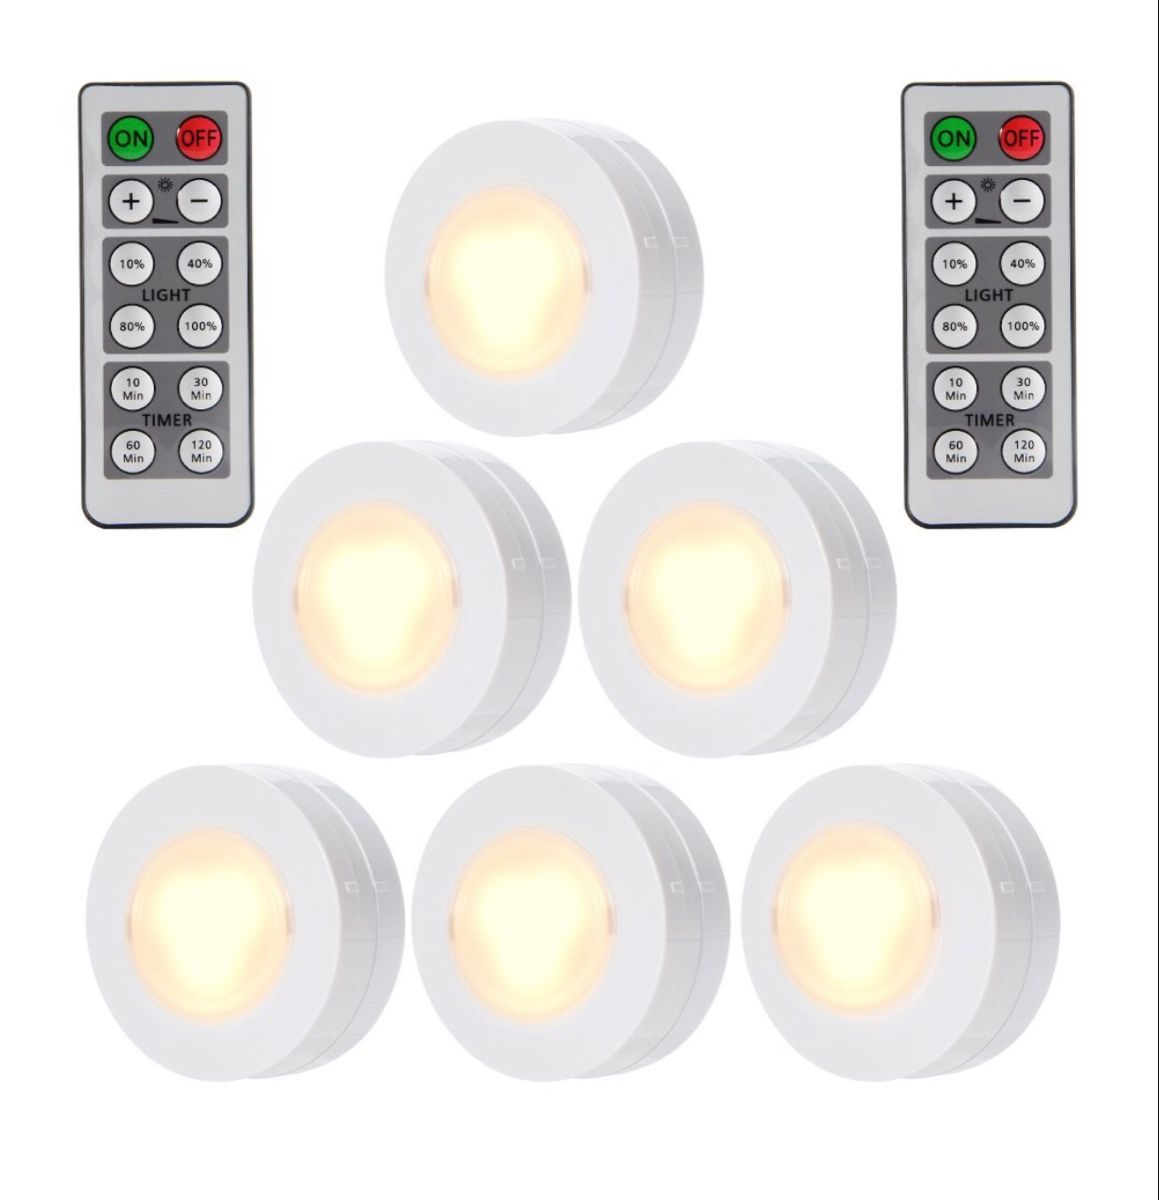 6 Packed Led Puck Lights Remote Controlled Closet Lights Super Bright Under Cabinet Lighting Round Shape Battery Powered Dimmable Light Walmart Com In 2020 Under Cabinet Lighting Wireless Light Kitchen Cabinets